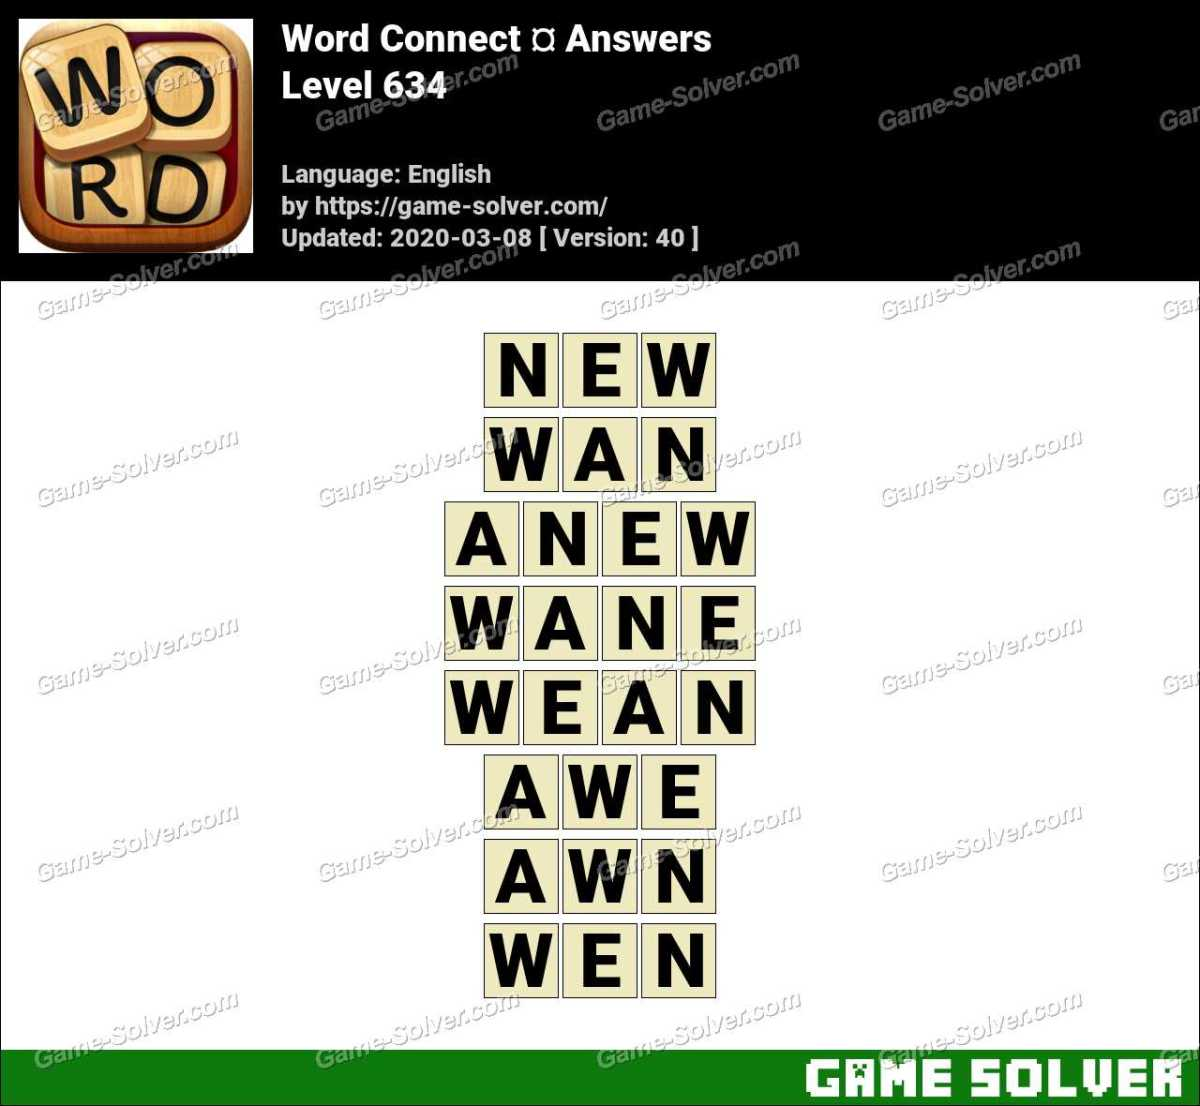 Word Connect Level 634 Answers